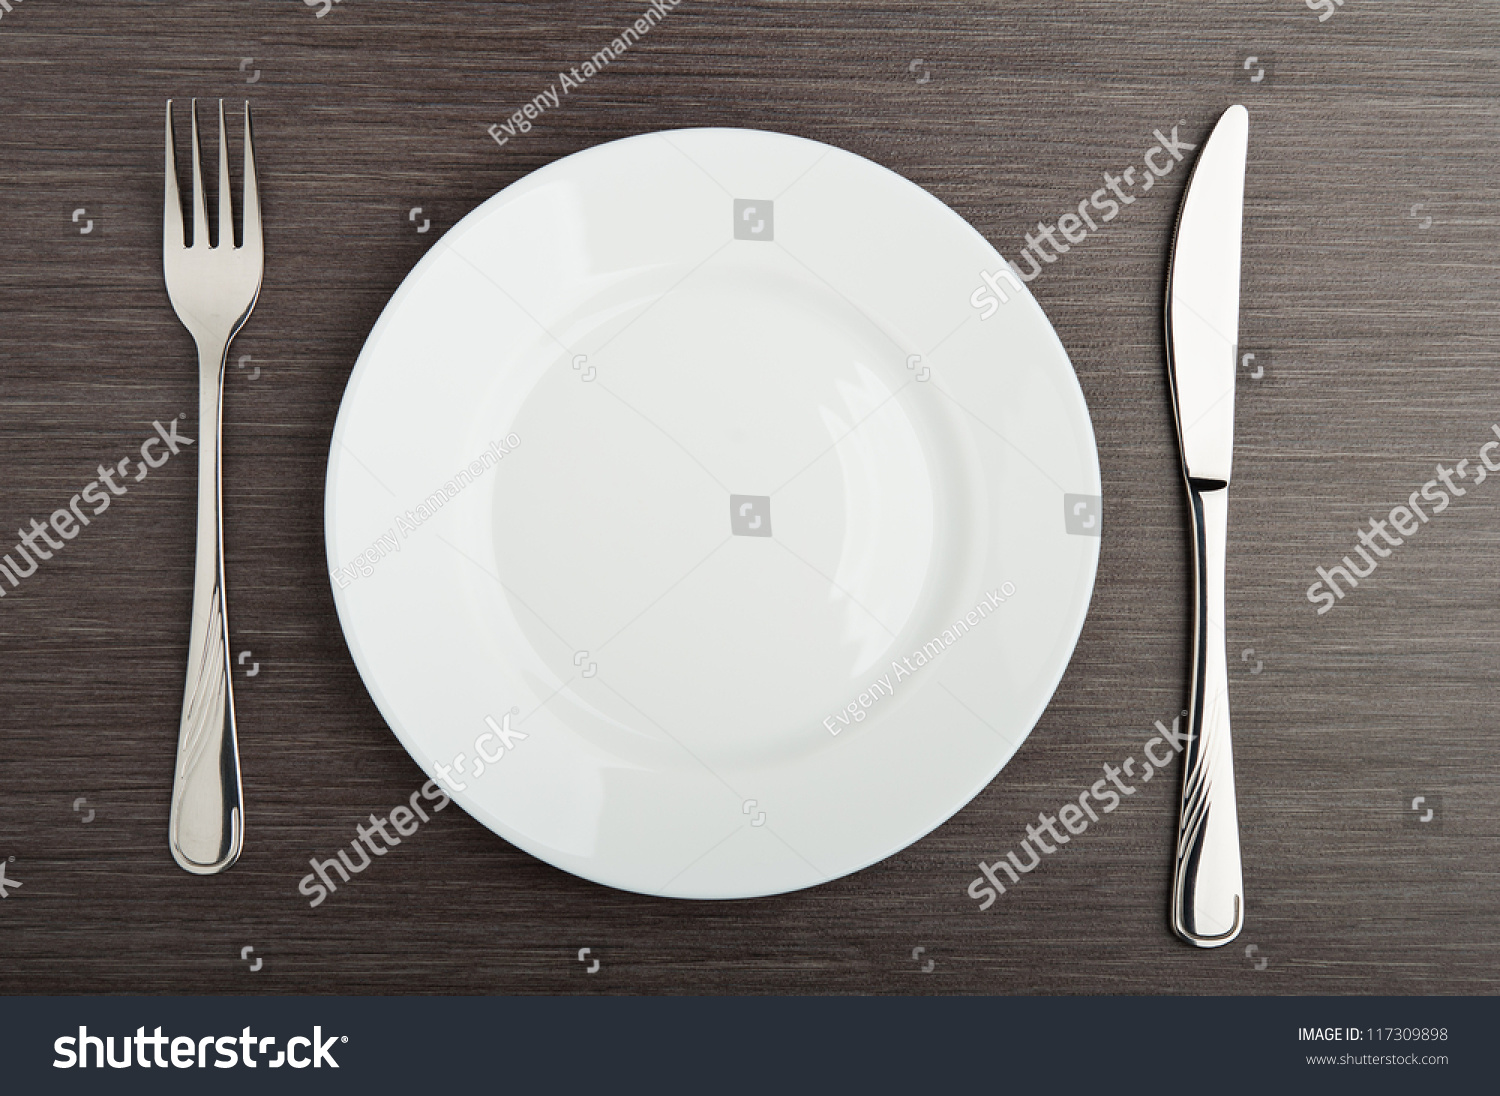 An empty white dish with knife and fork on a table - Table Setting Plate Fork Knife White Empty